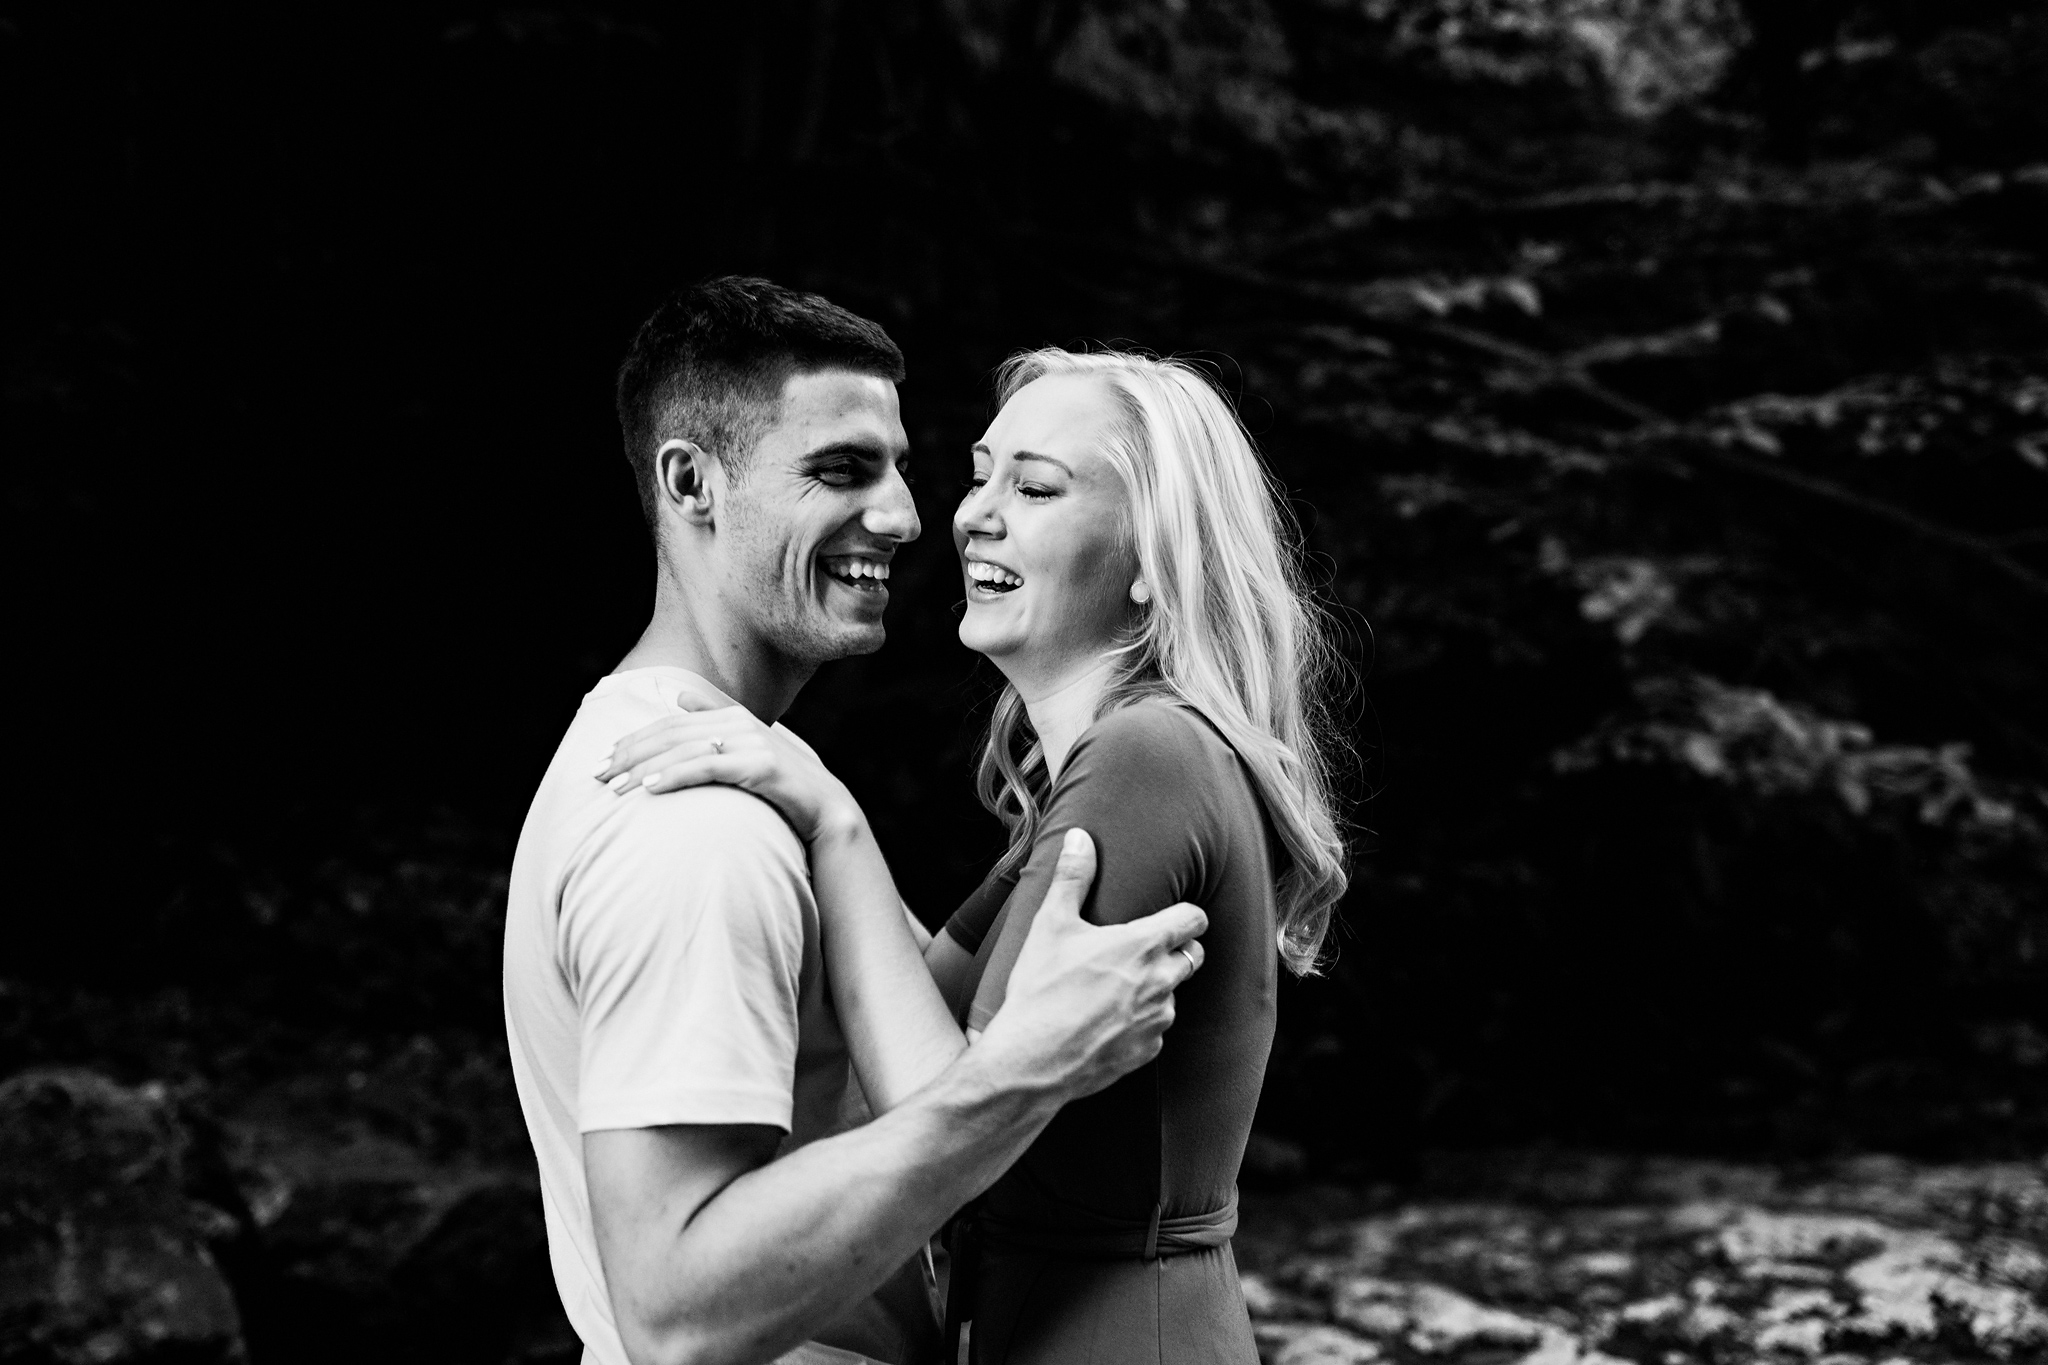 256-romantic-summer-elora-gorge-sunset-engagement-session.jpg